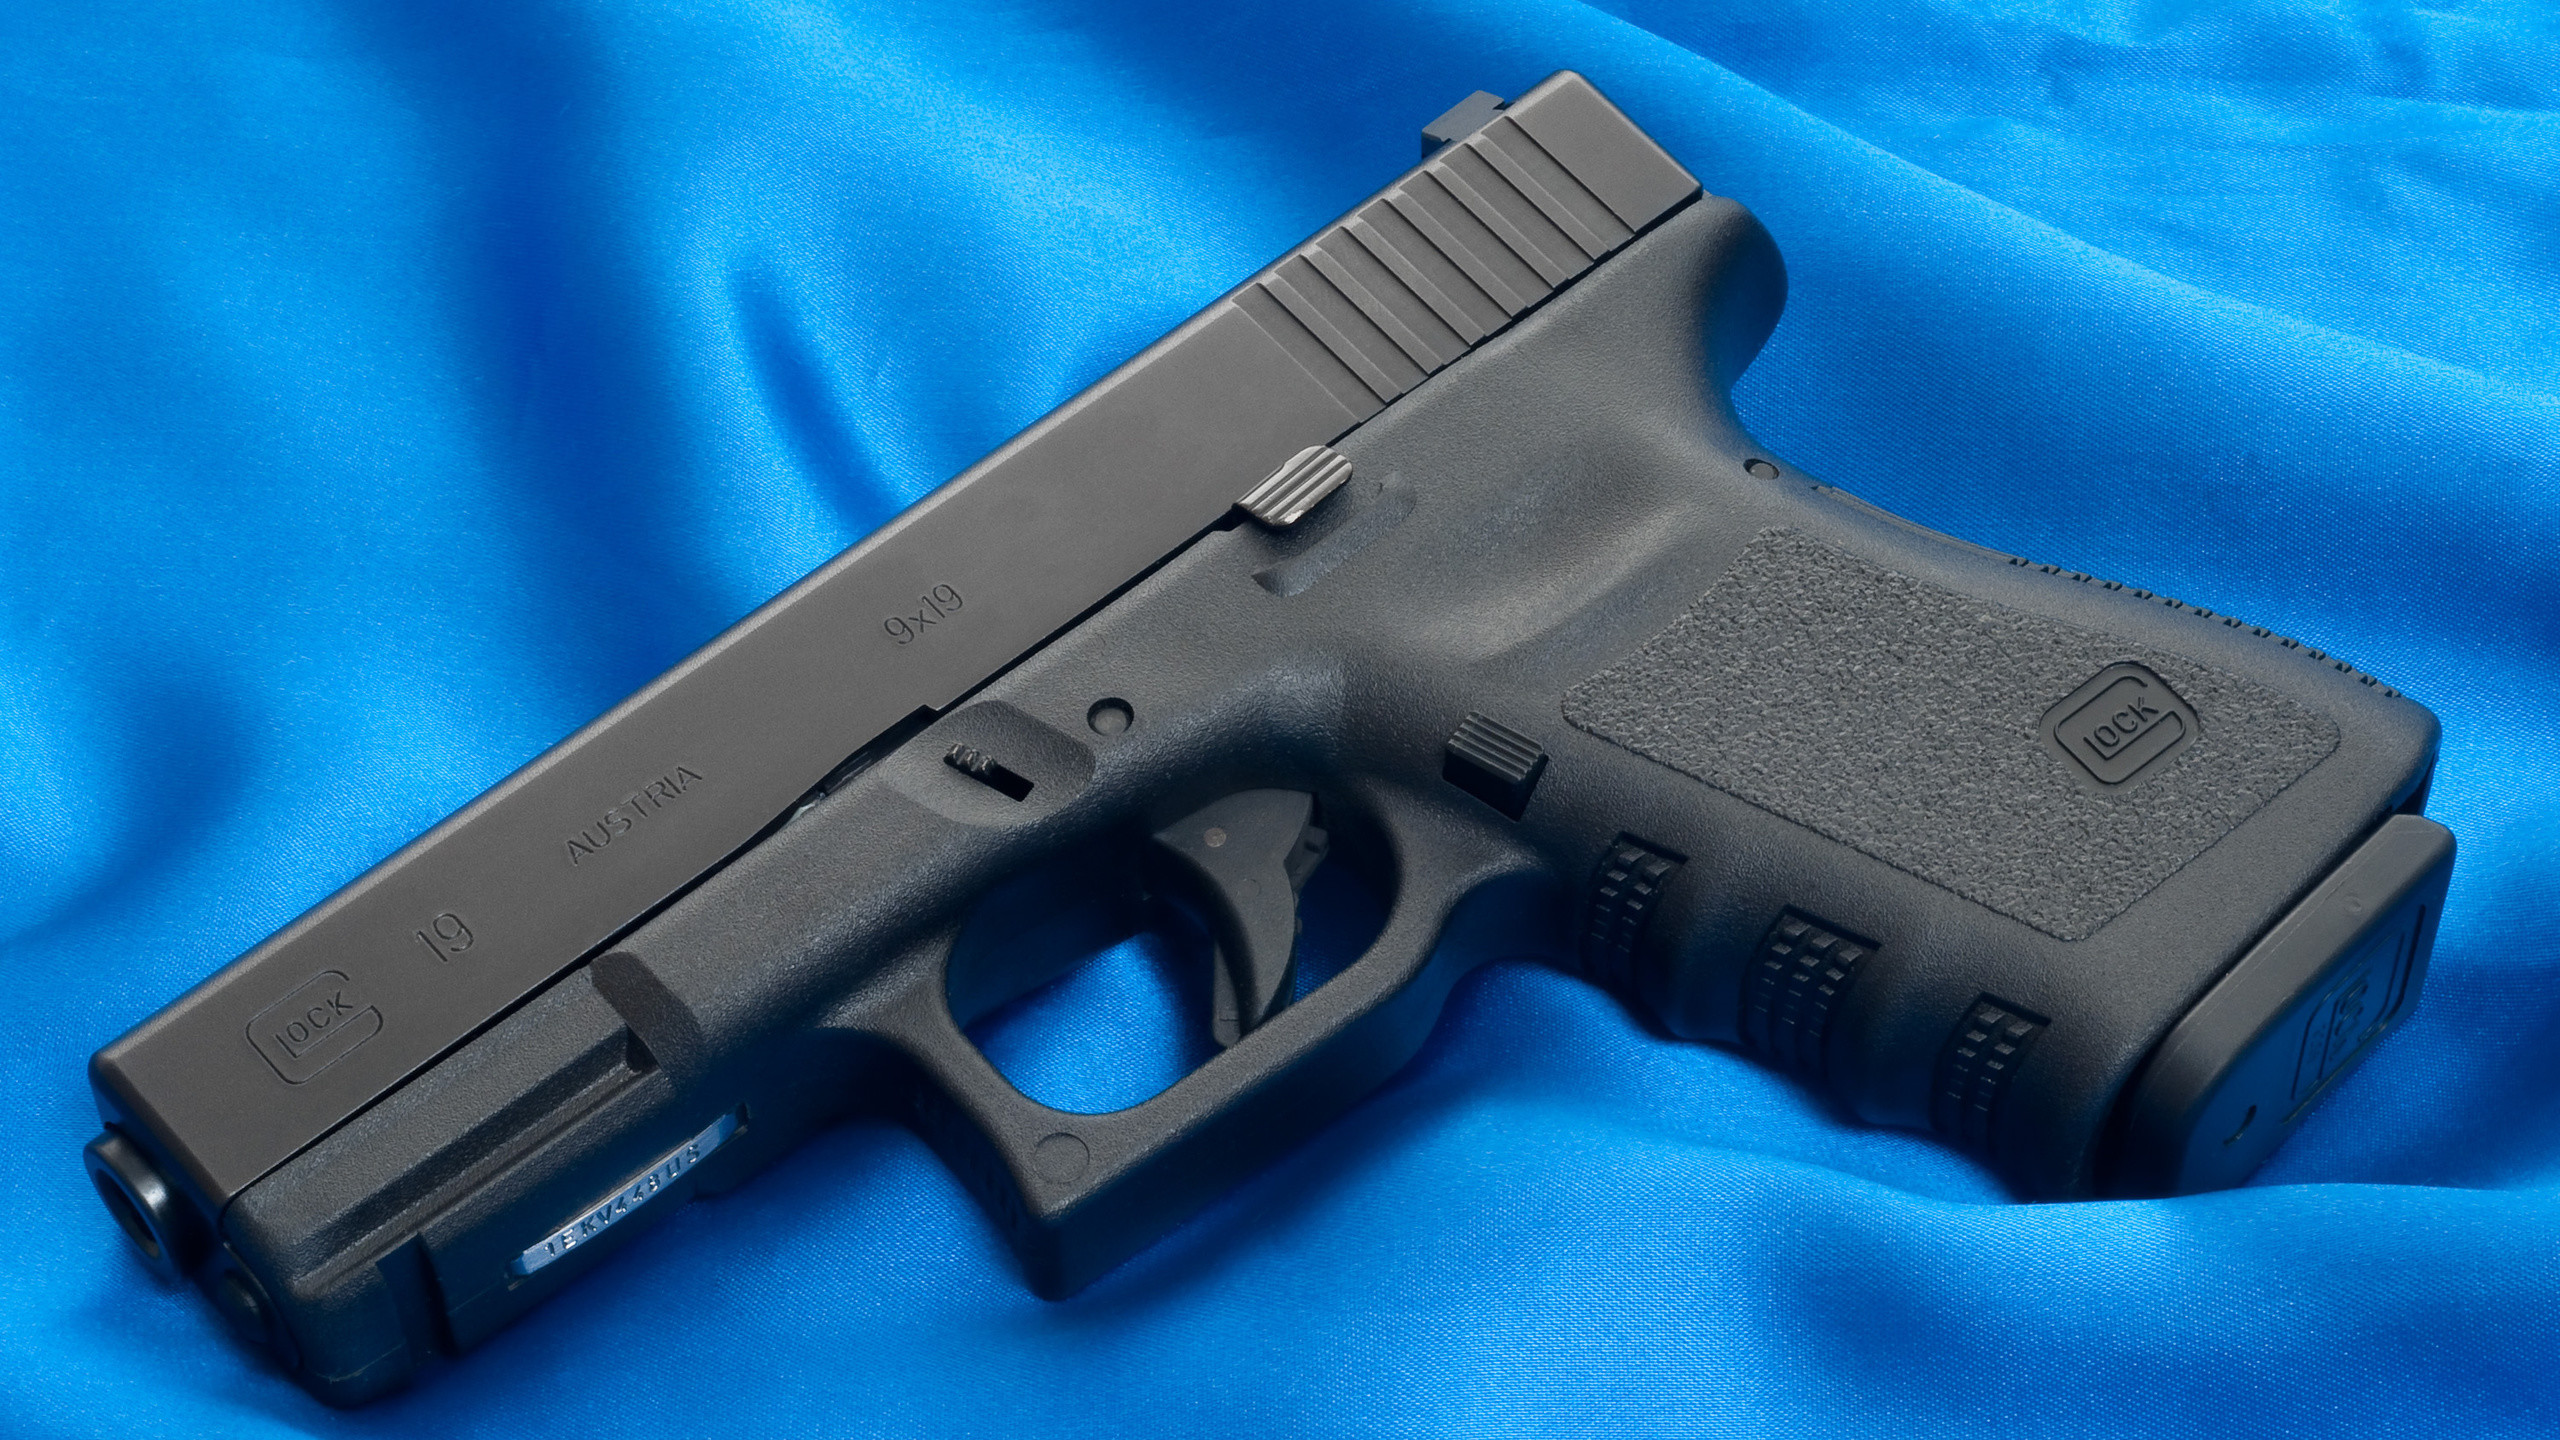 Res: 2560x1440, Weapons, Austria, Canvas, Glock, Blue, 19, Gun, Wallpaper